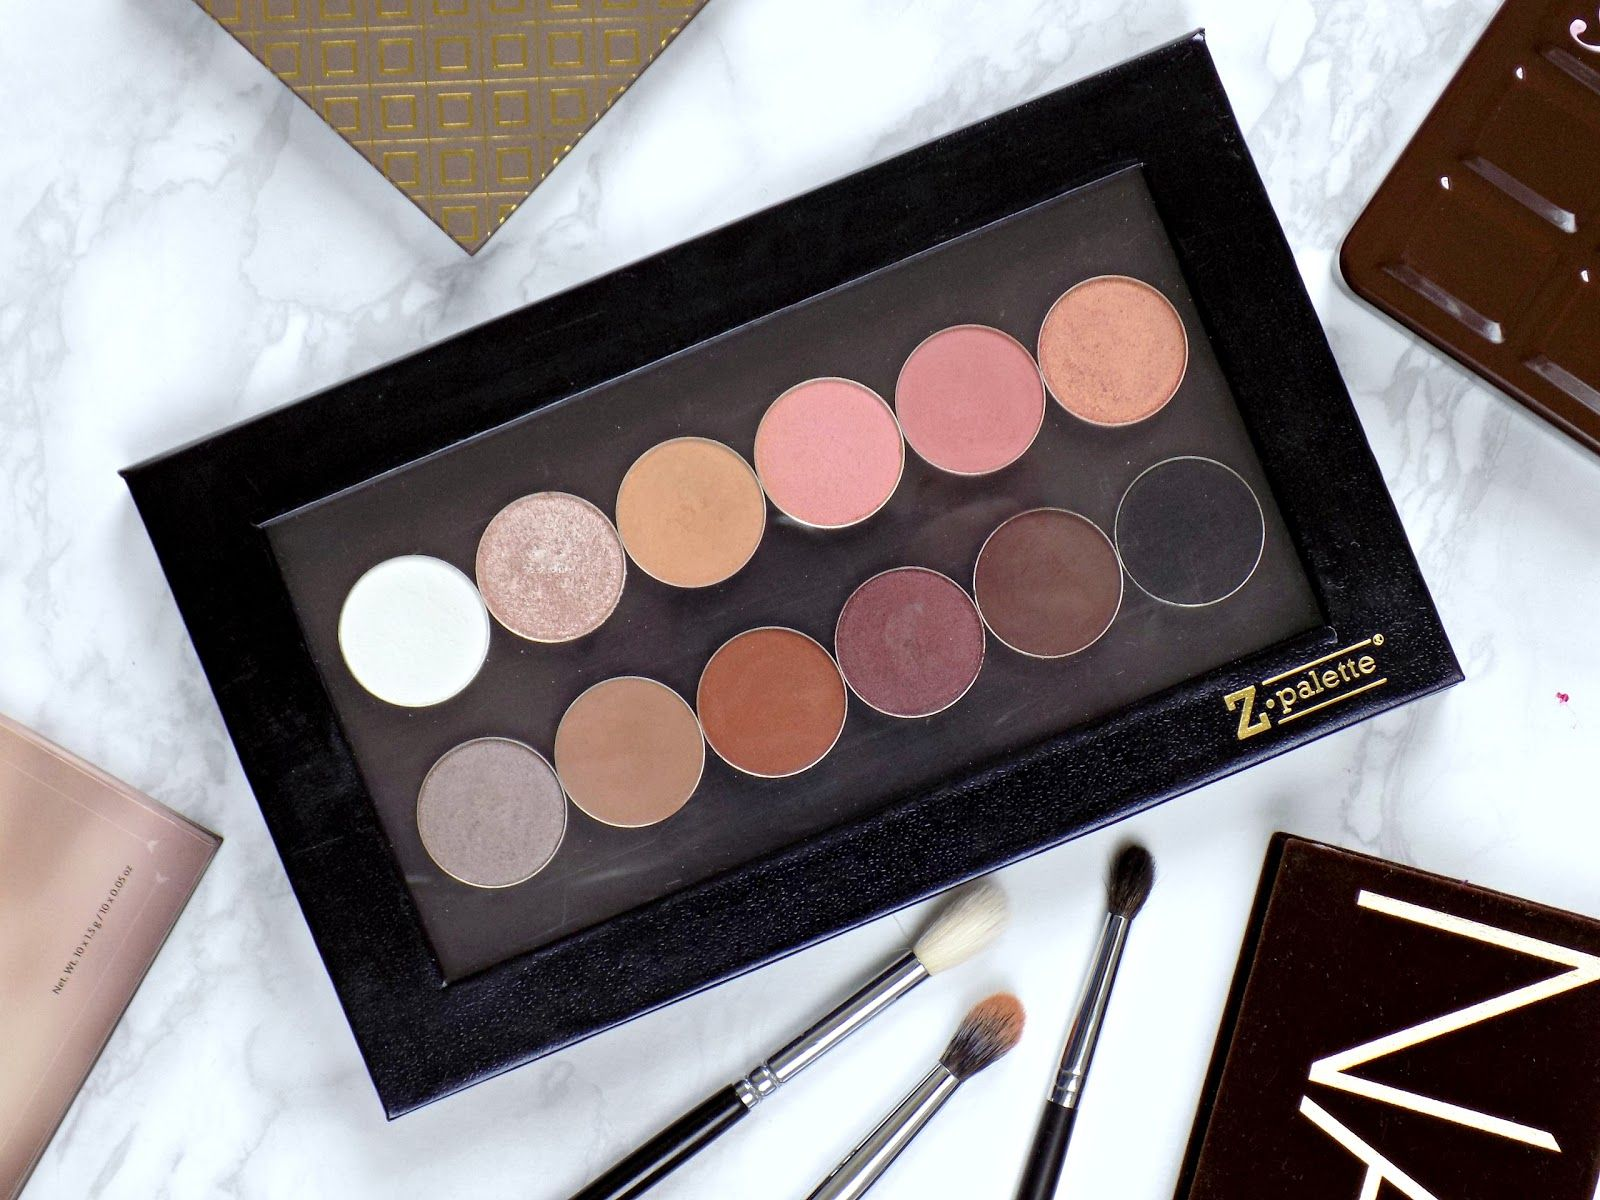 'Create your own eyeshadow palette' tag, my perfect